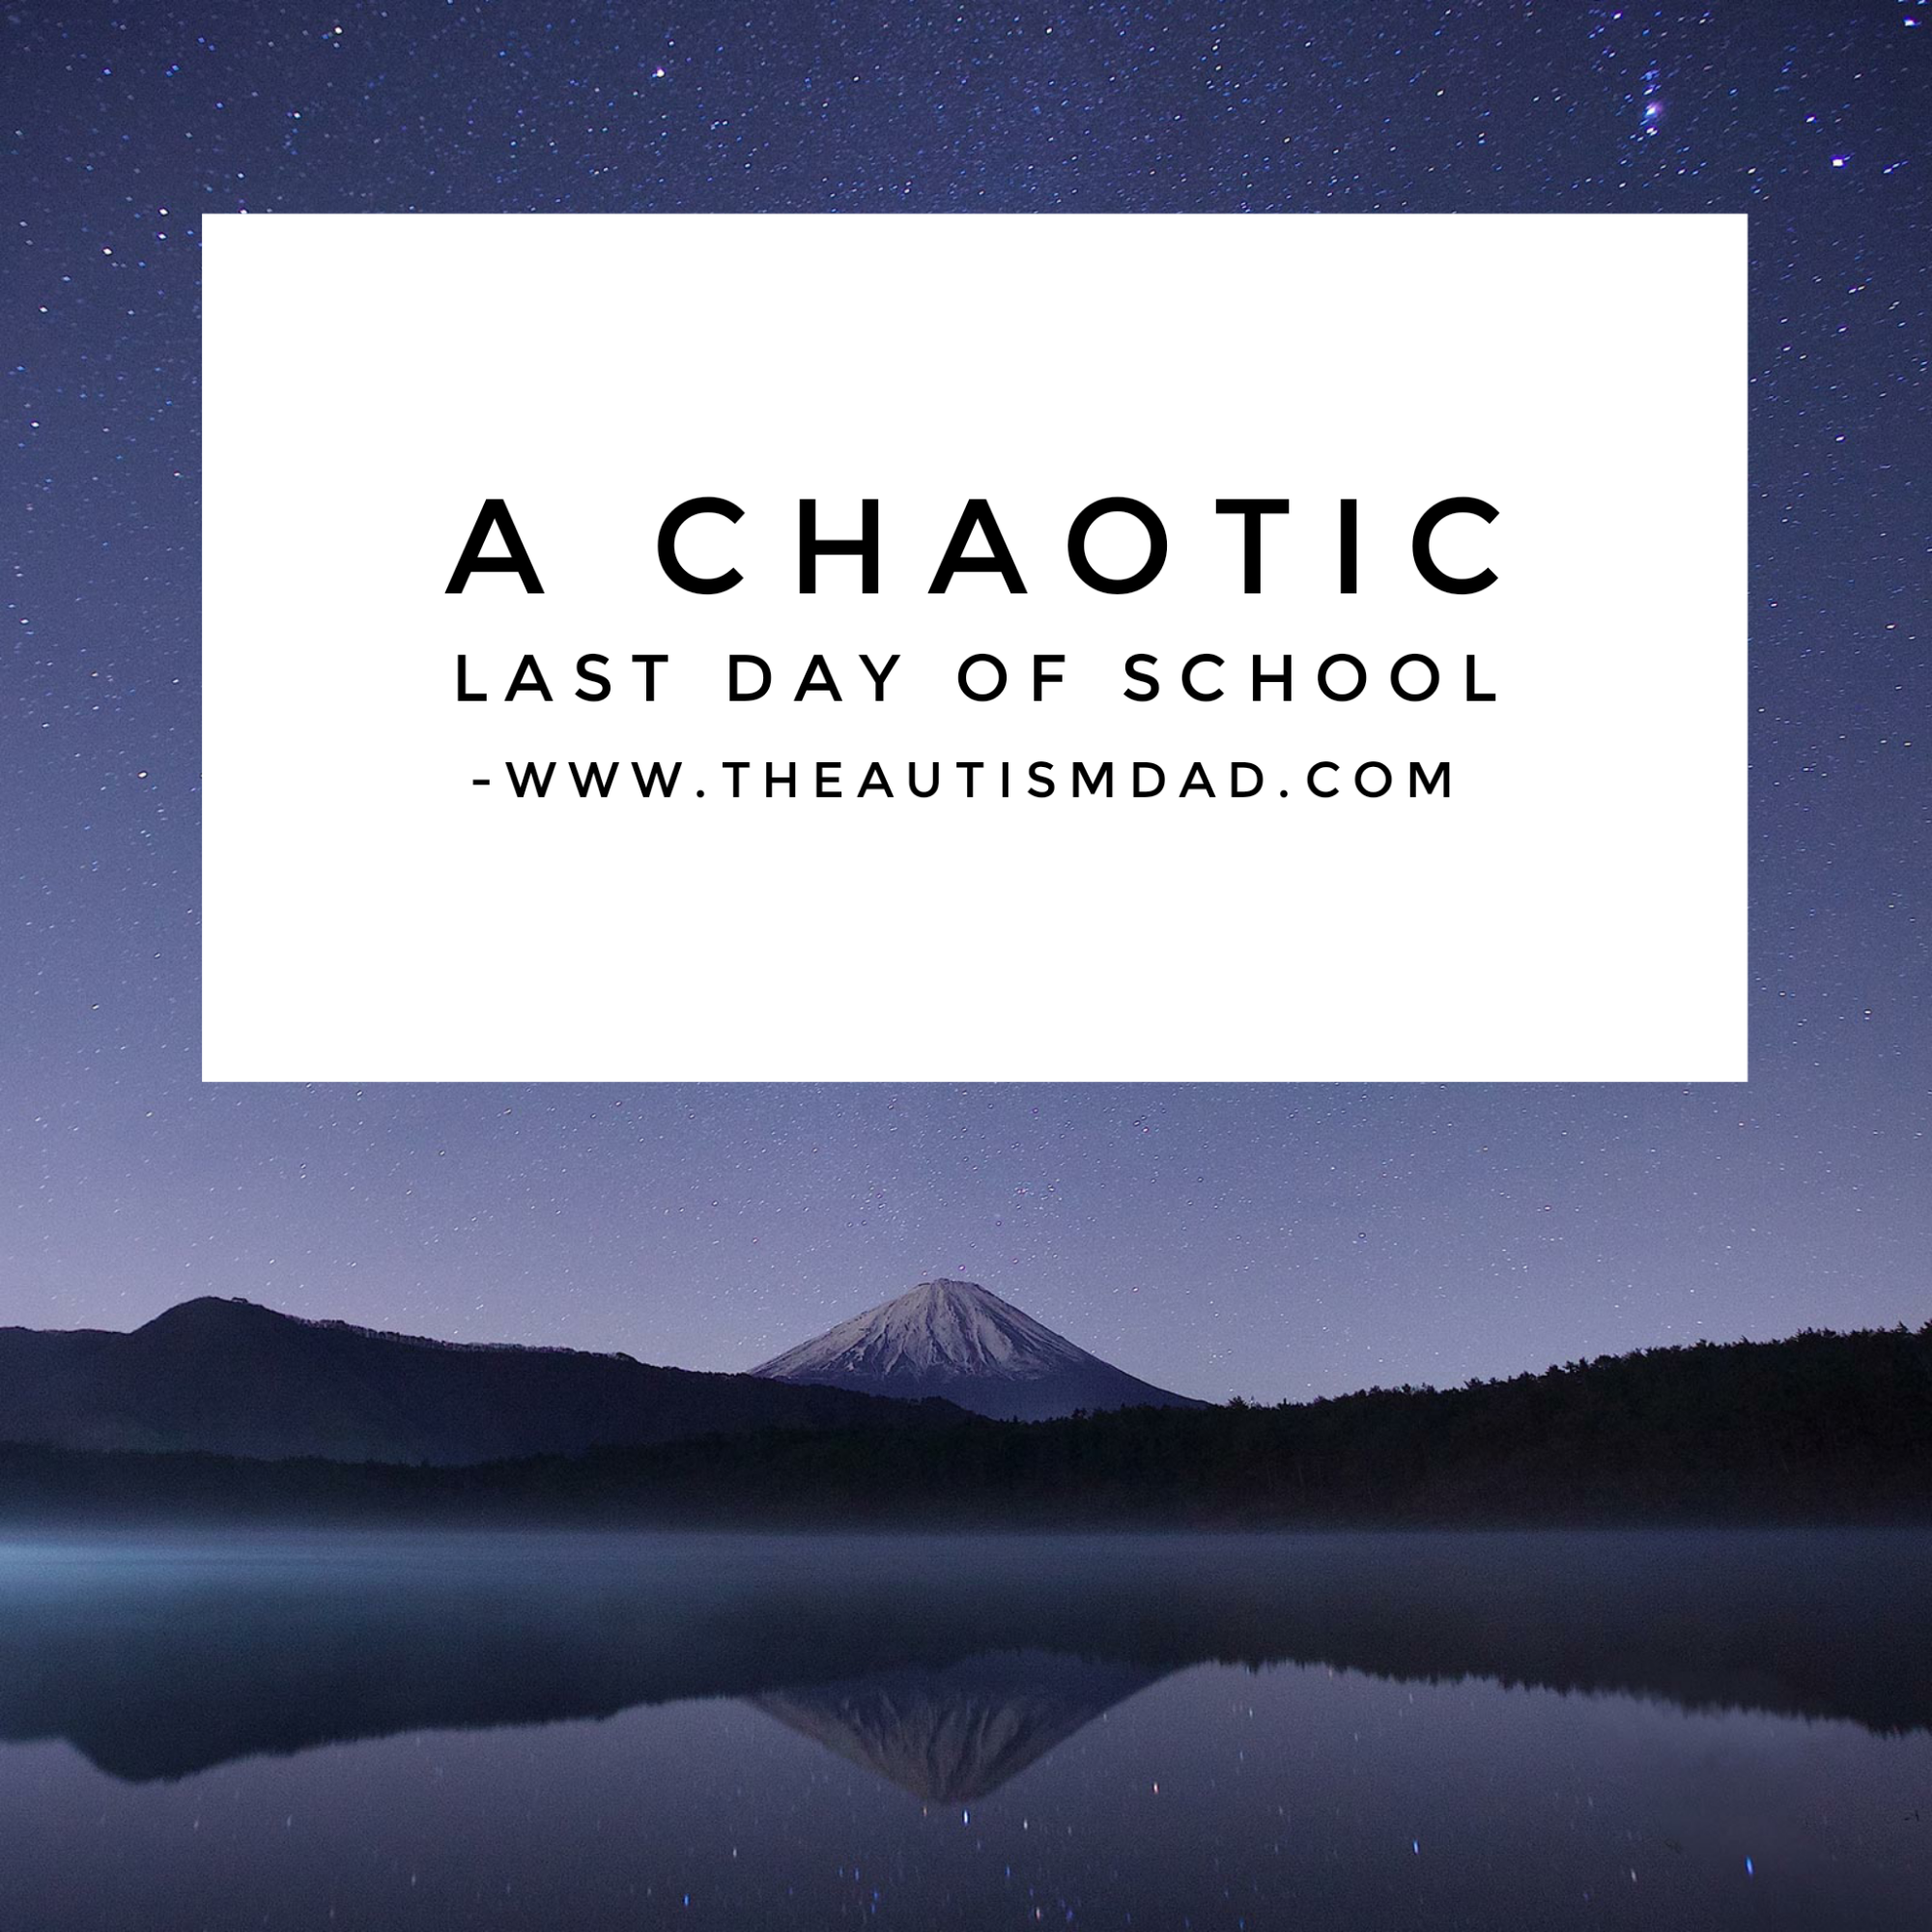 A chaotic last day of school